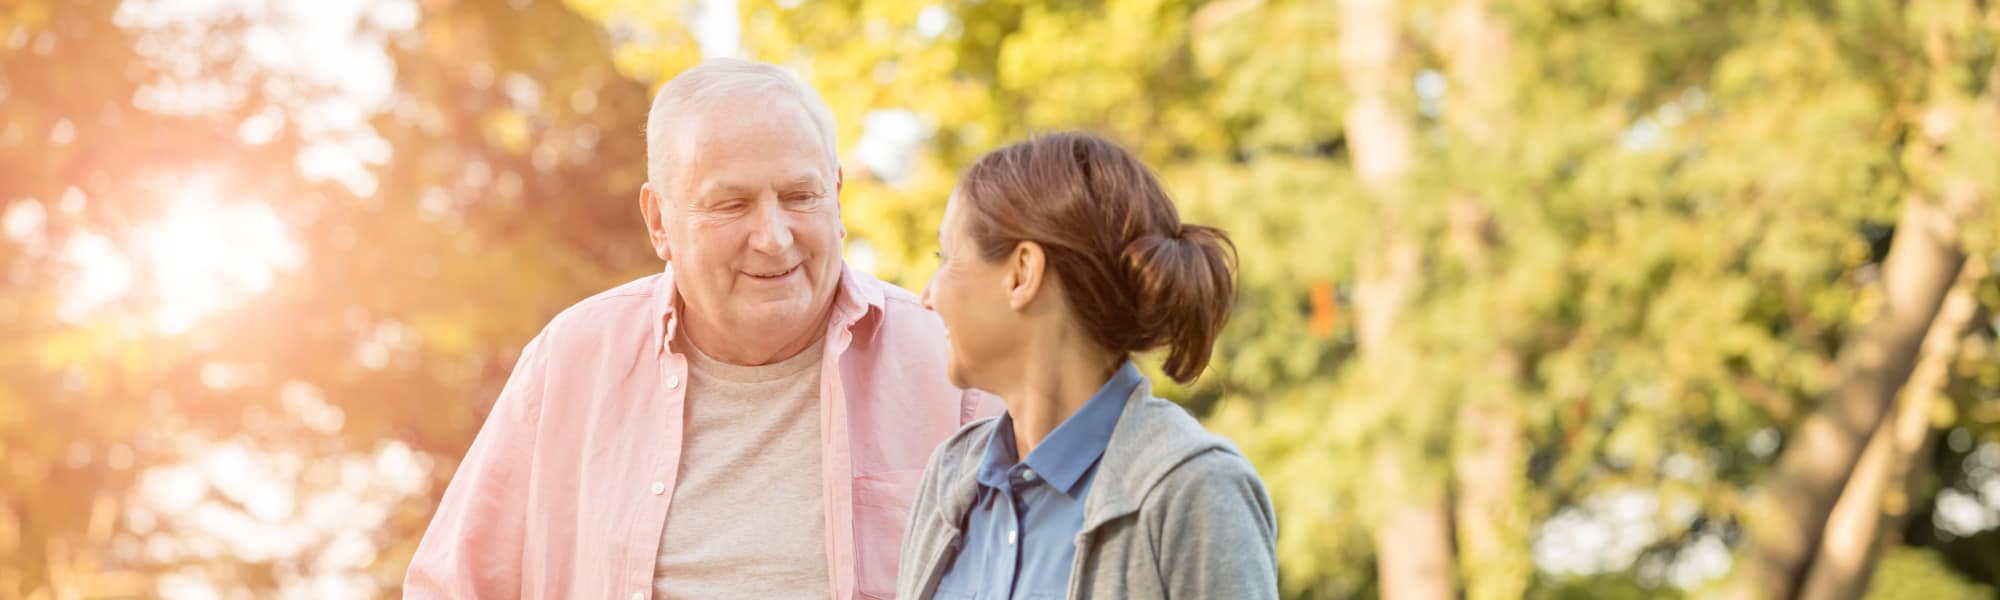 Services offered by At Home Care Group in Oregon